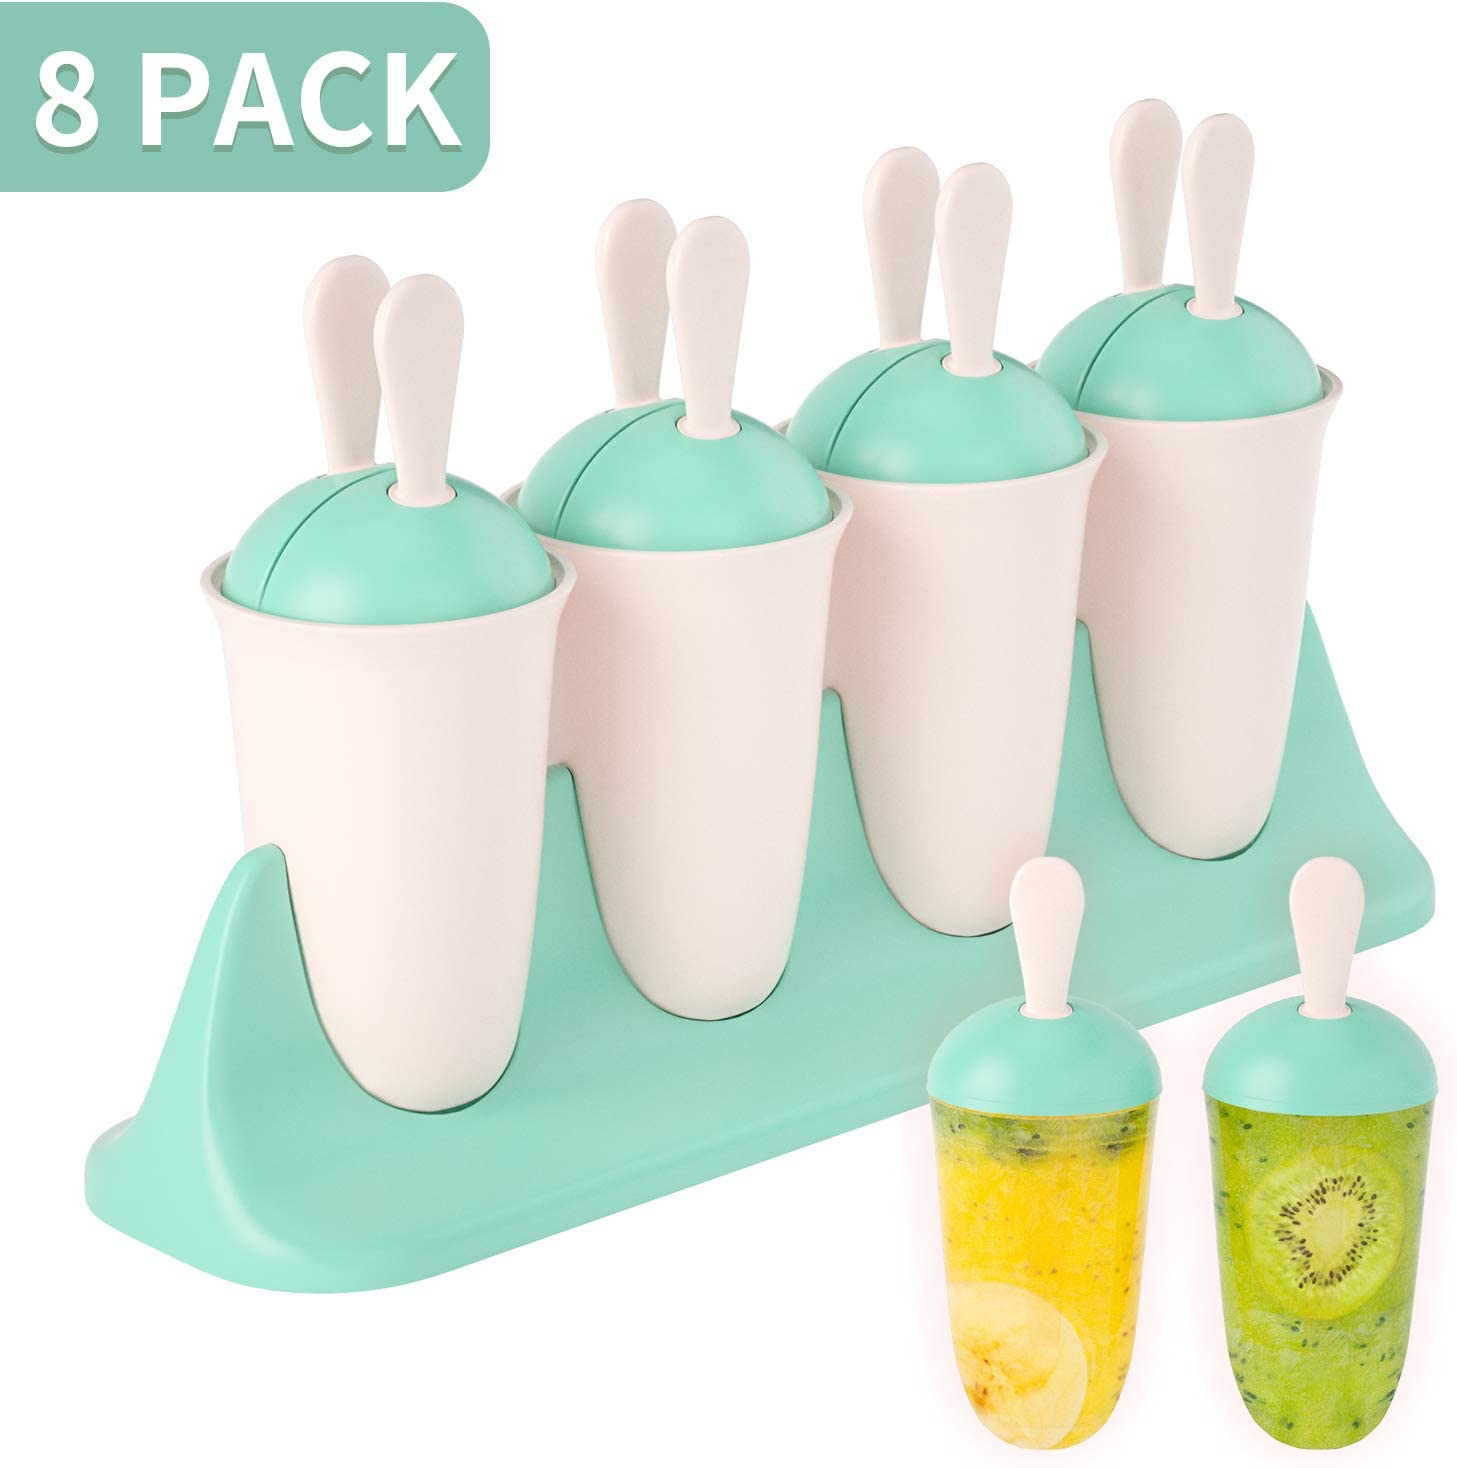 LEEFE Popsicle Molds 8 Packs, Rabbit Ear Ice Pop Makers Reusable Easy Release Ice Pop Mold, Food Grade Material BPA Free Ice Cream Mold, Homemade Popsicle Mold for Kids